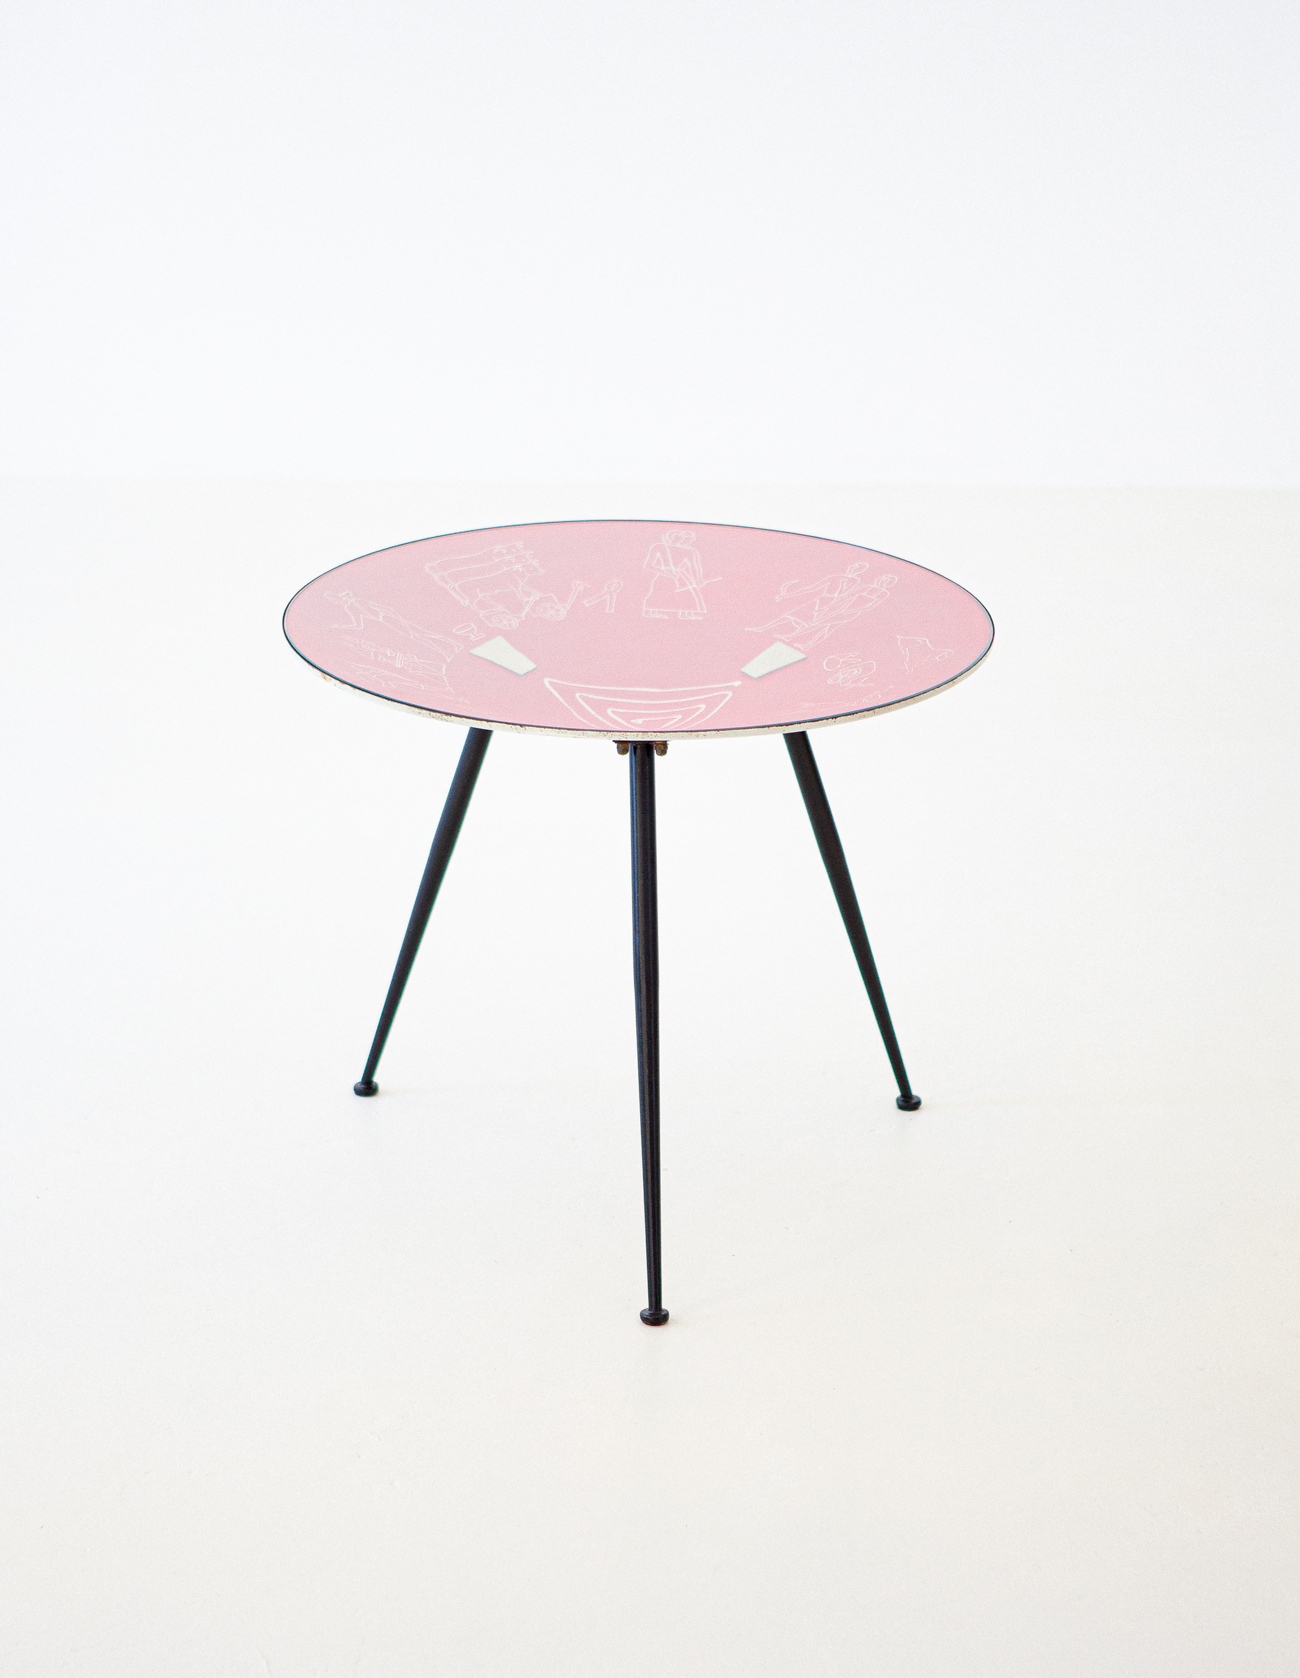 1950s-italian-modern-round-red-coffee-table-2-t82